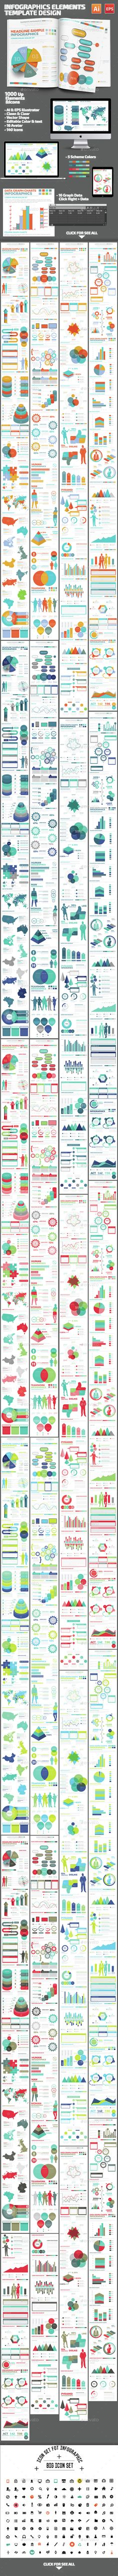 Infographics Elements Design Template Vector EPS, AI. Download here: http://graphicriver.net/item/infographics-elements-template-design/15418936?ref=ksioks